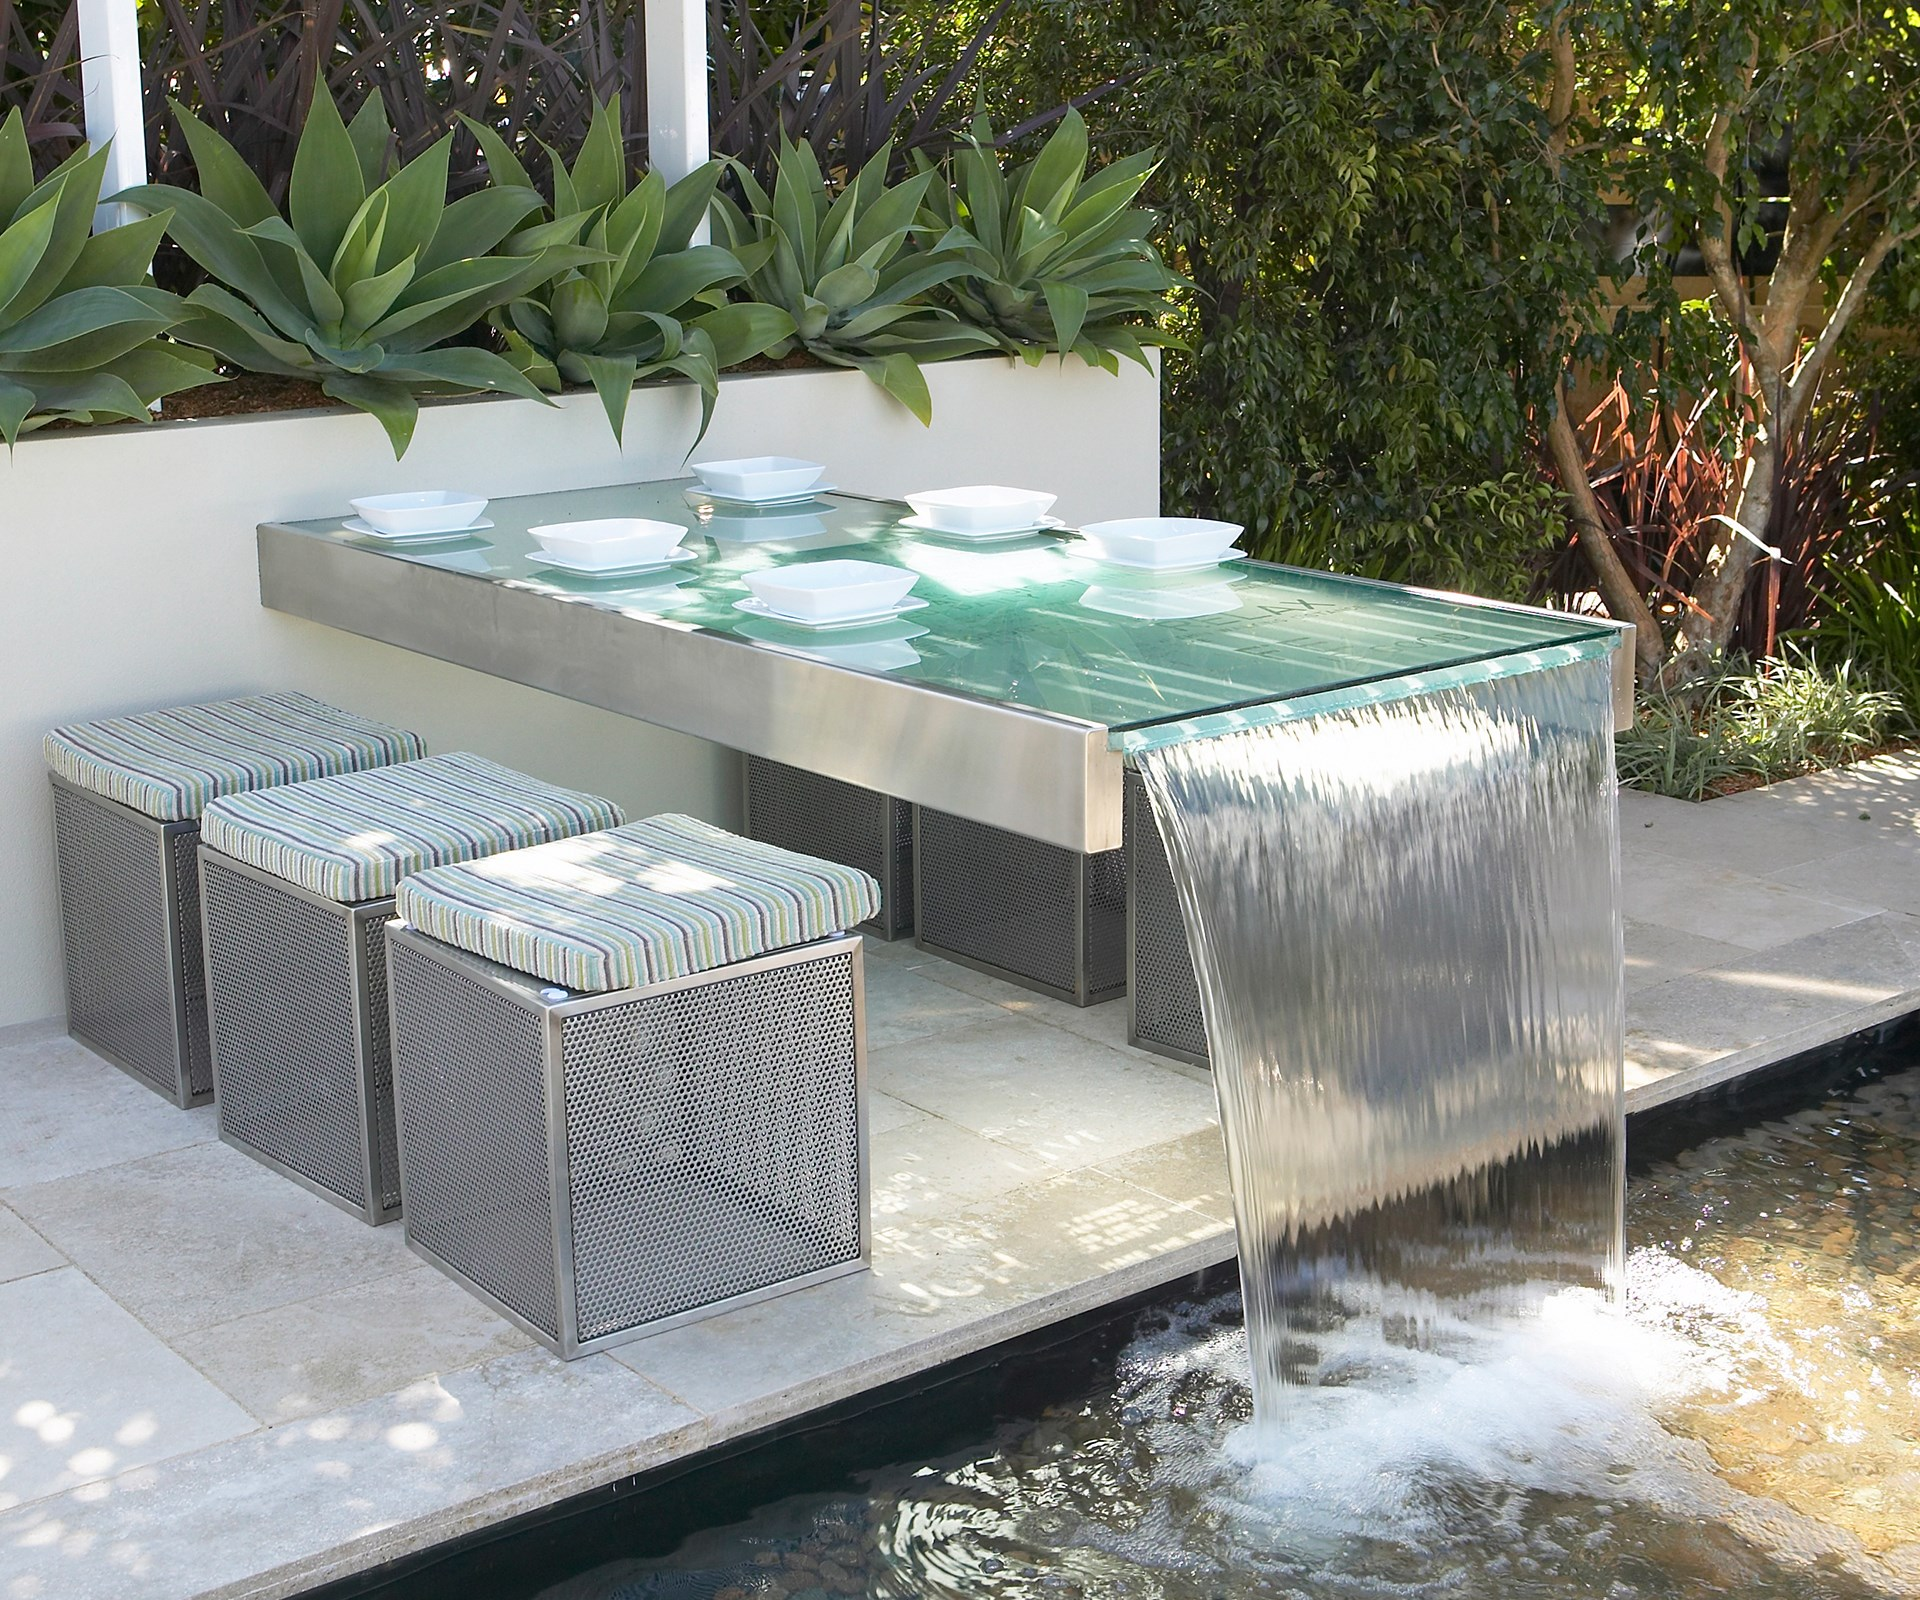 Image Result For Modern Waterfall Design